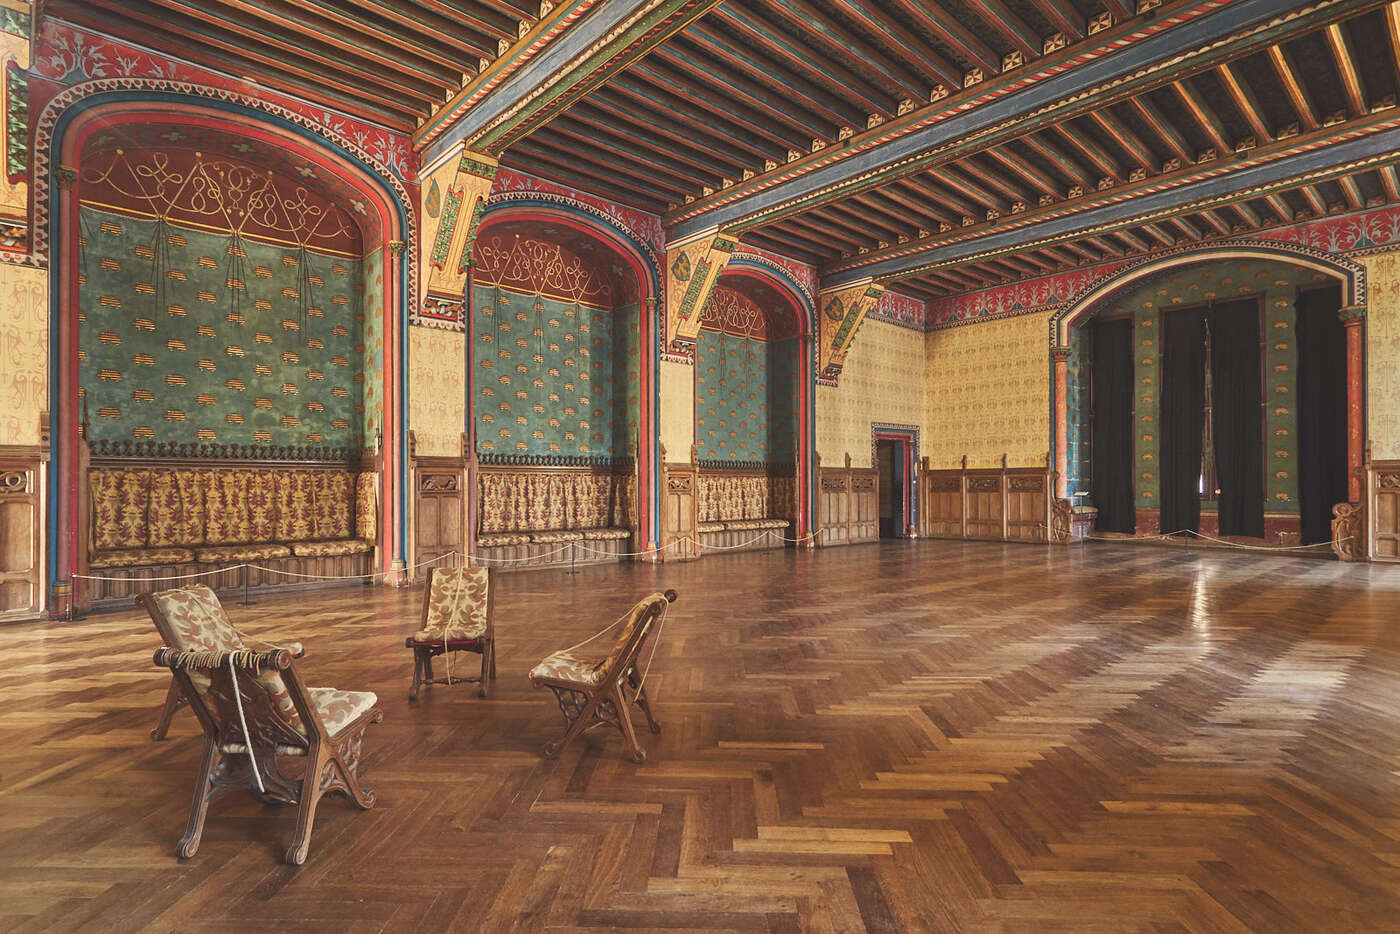 Salon de réception du château de Pierrefonds